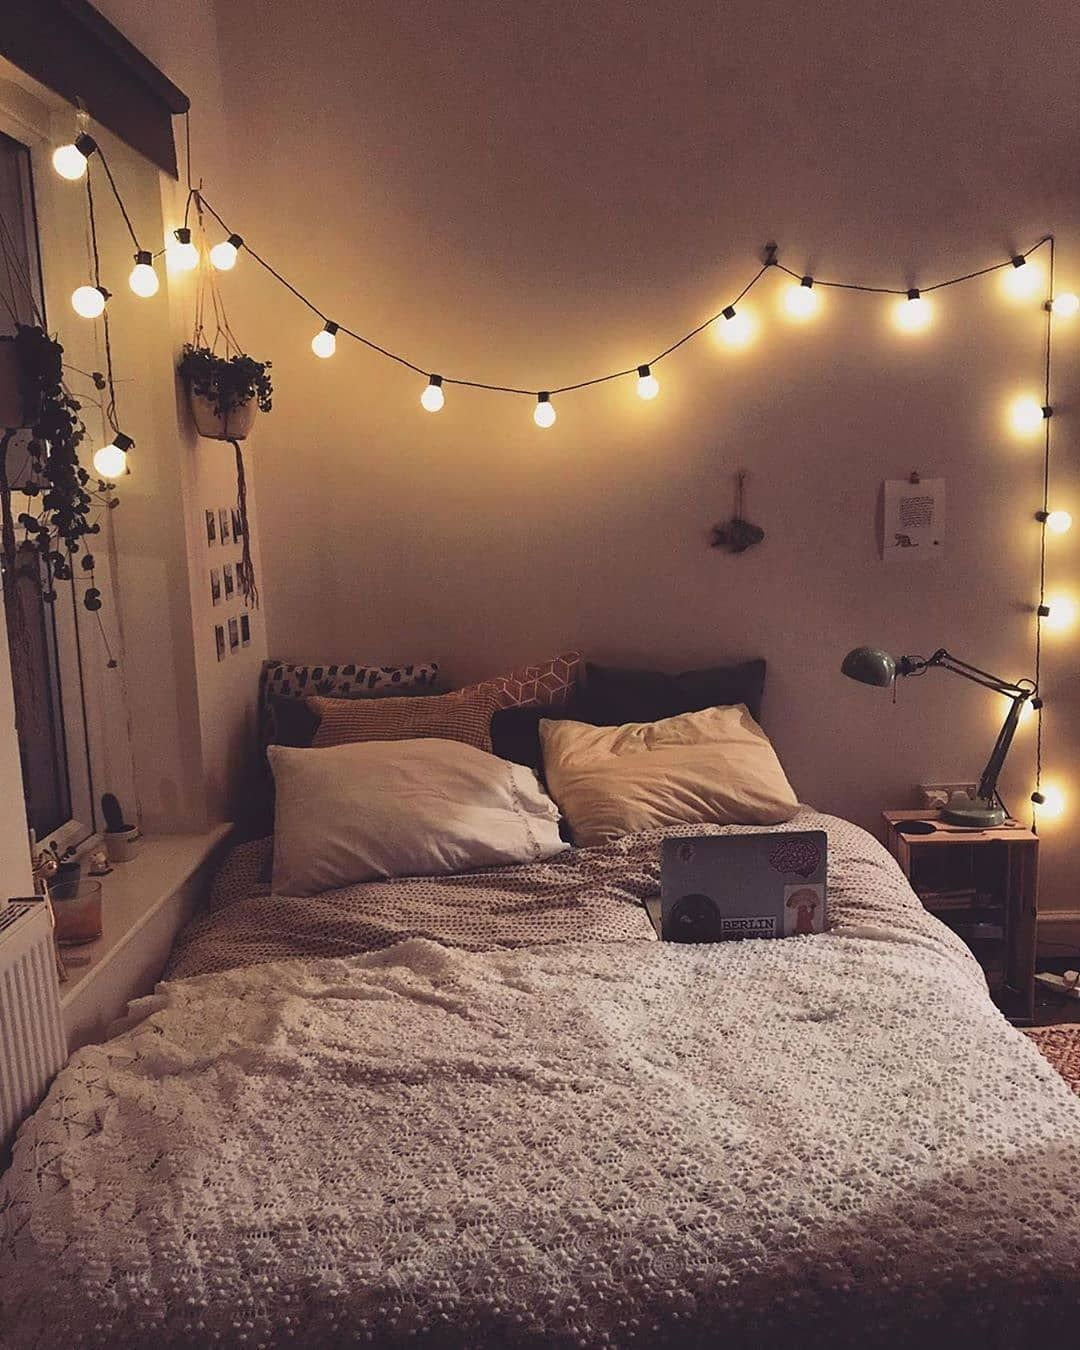 Pin By Eunice Park On Alpine Bedroom Decor Lights Relaxing